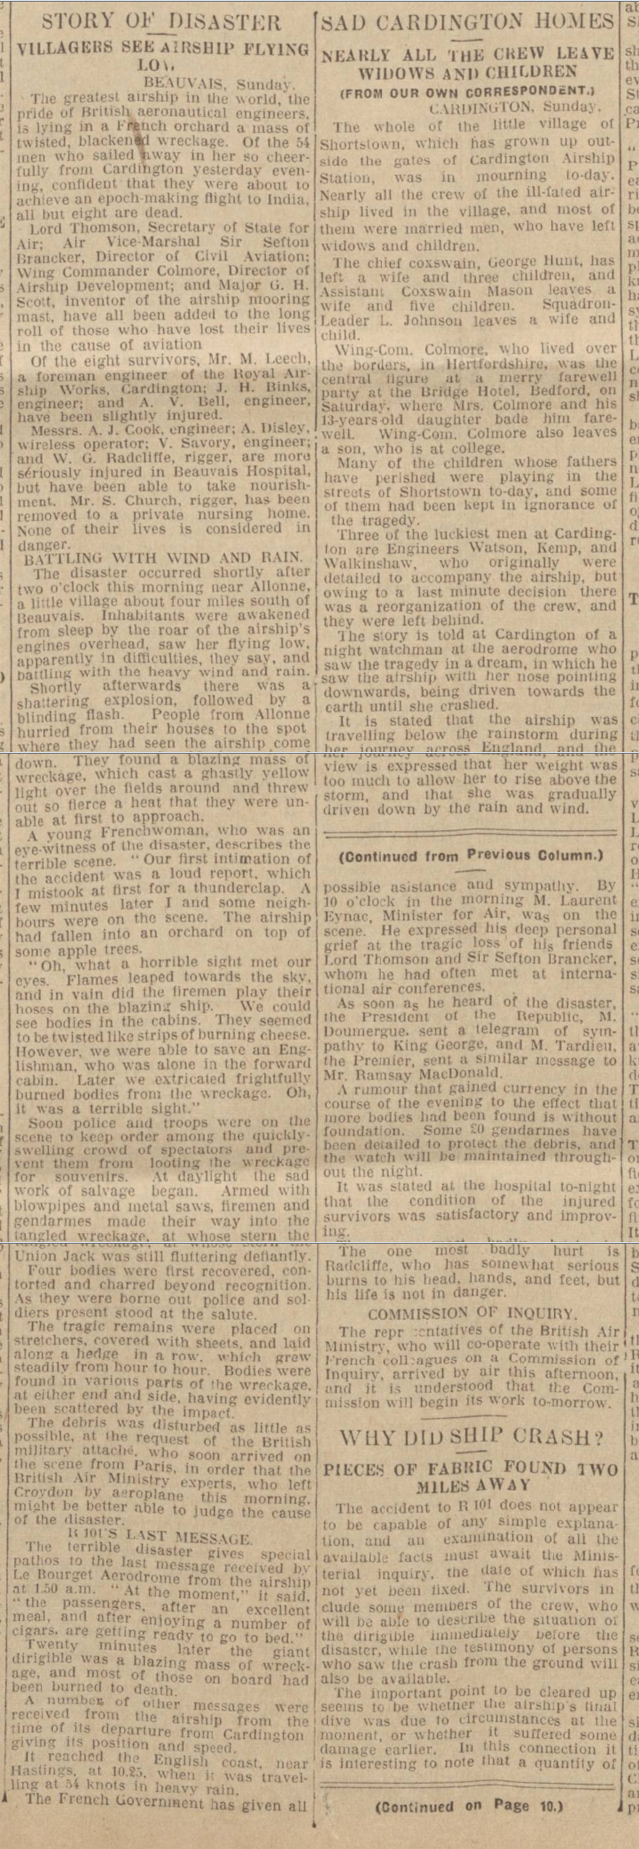 historical newspaper report on The R-101 Airship Disaster